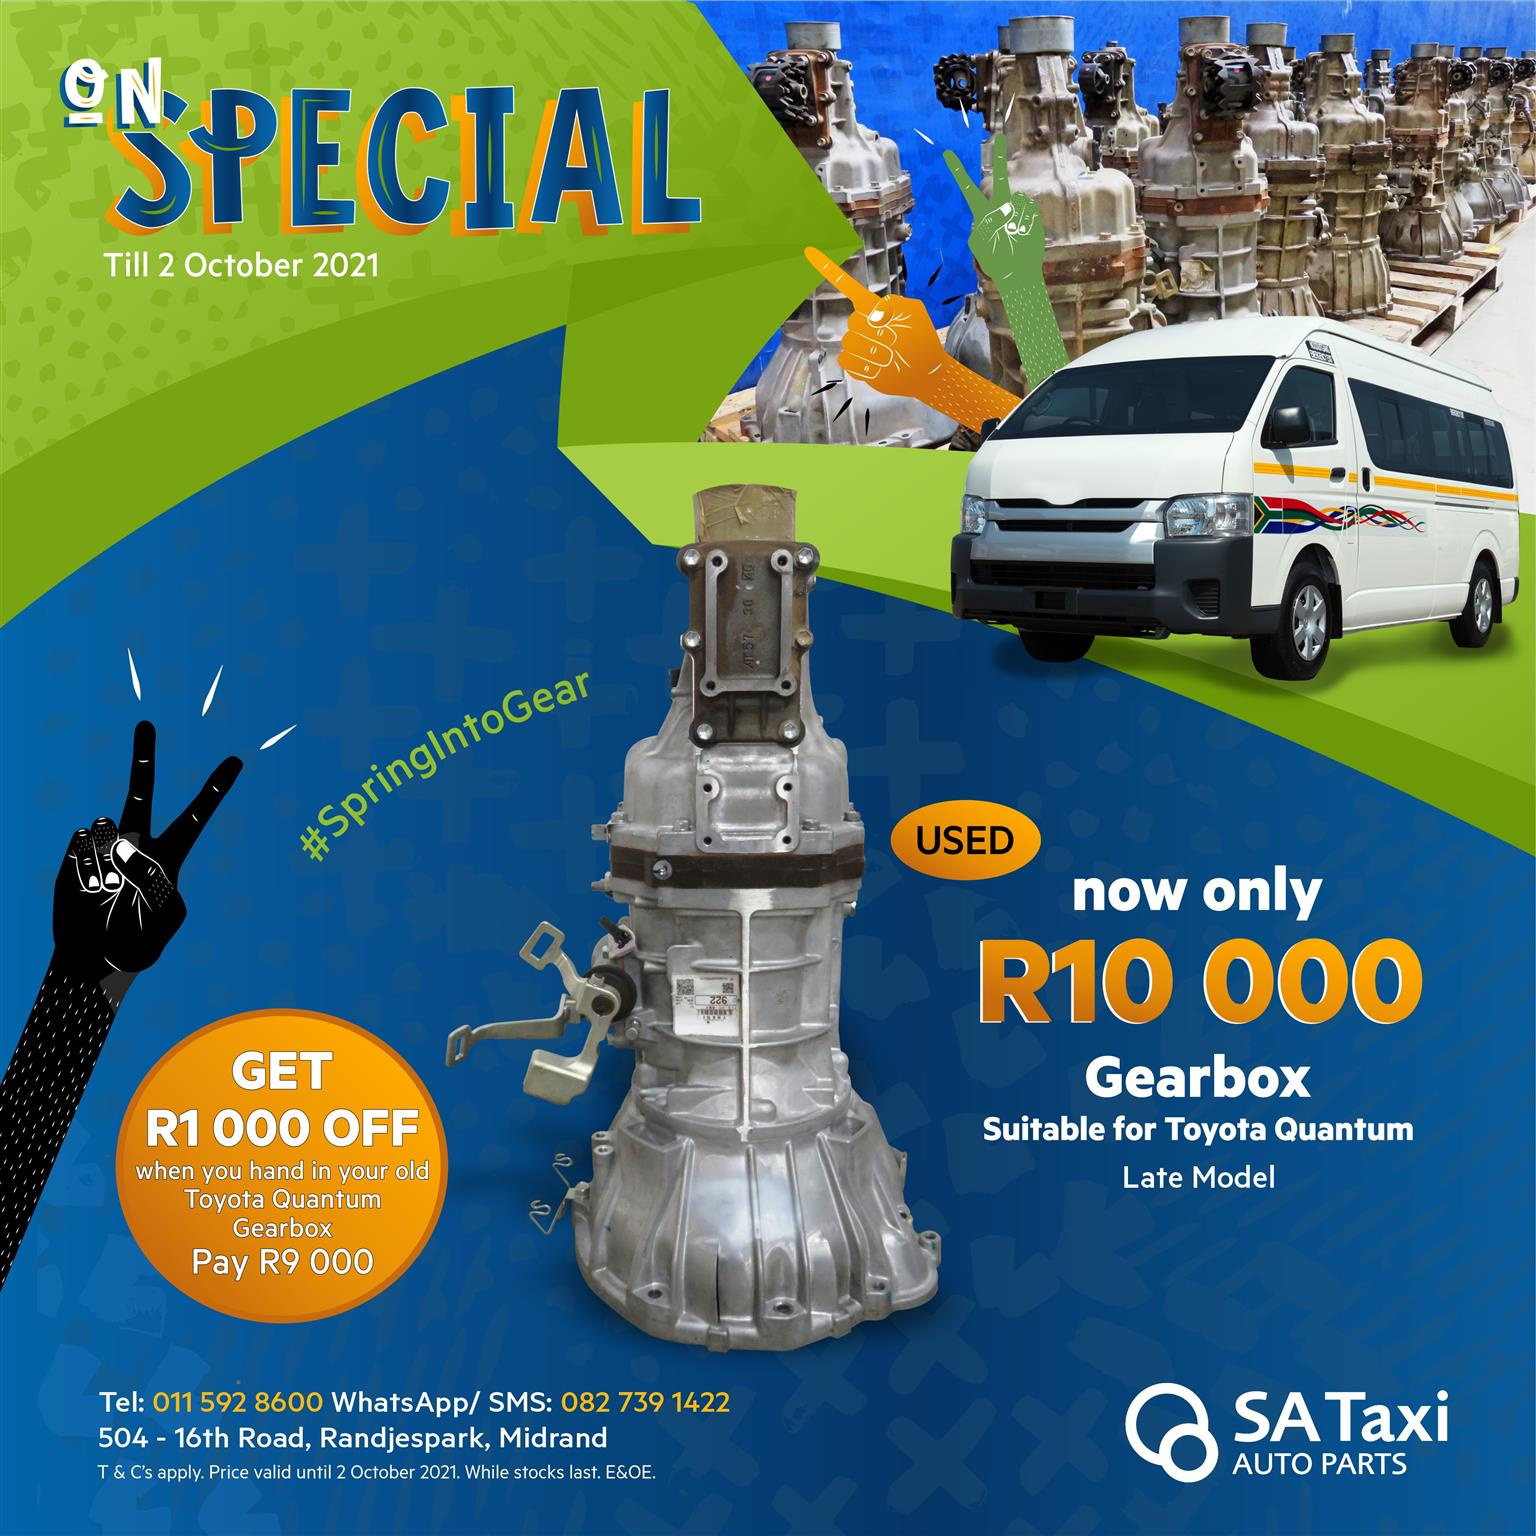 Quality Used Gearbox for Toyota Quantum | On Special until 2 October 2021